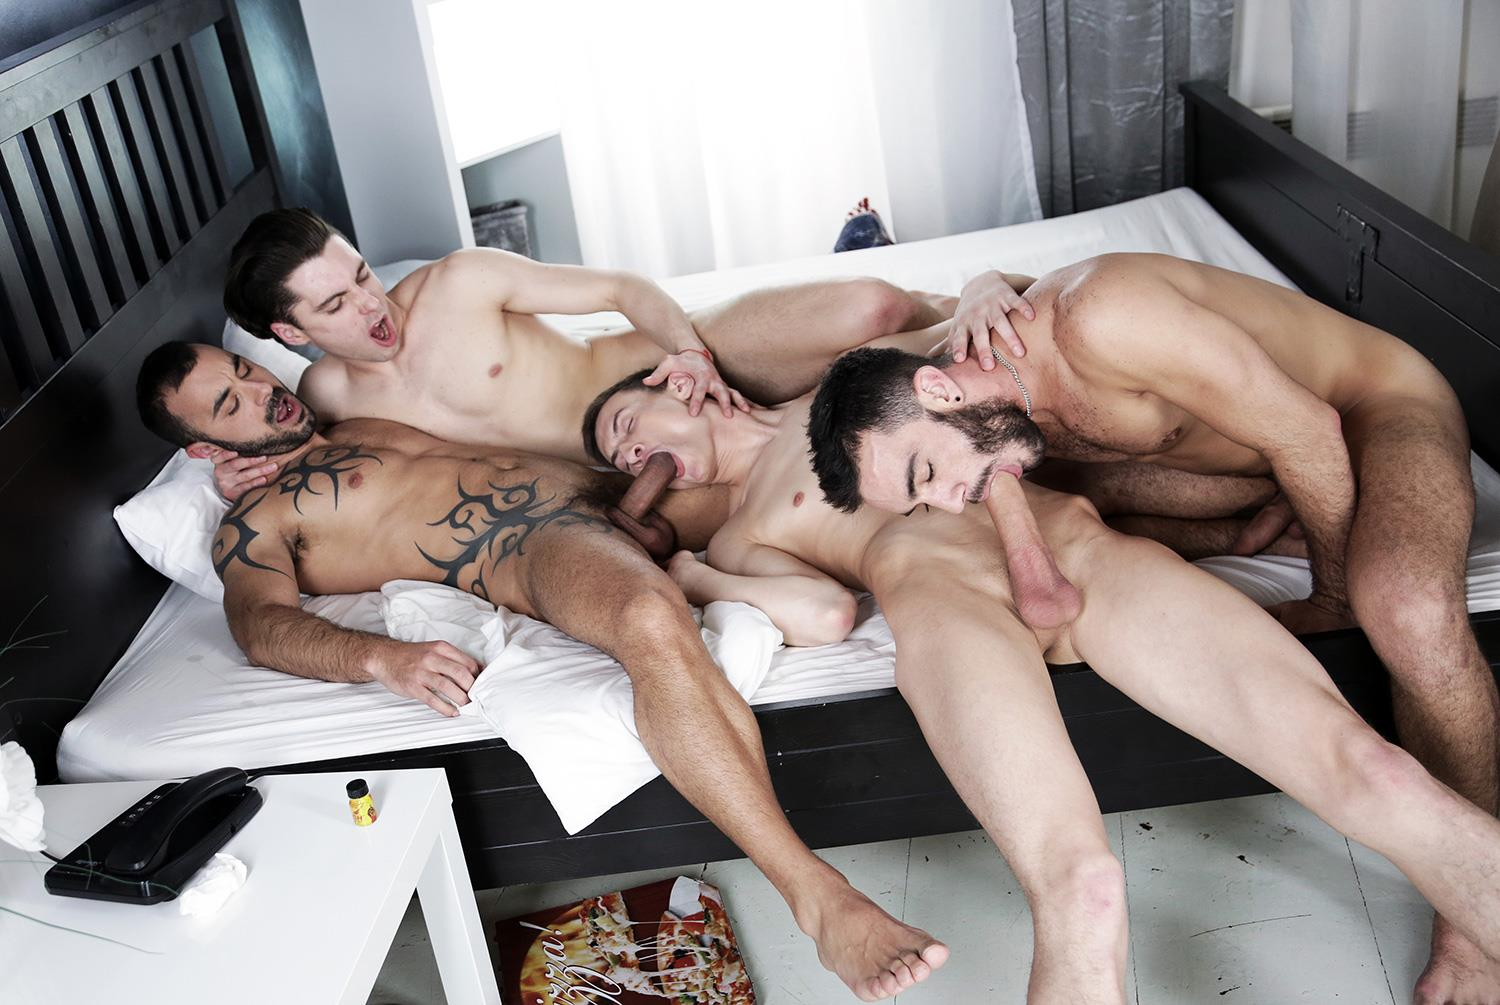 Staxus Alejandro Alvarez and Jace Reed and Johny Cruz and Xavi Duran Triple Penetration Bareback Amateur Gay Porn 08 Twink Johny Cruz Gets Triple Penetrated Bareback With 3 Big Uncut Cocks